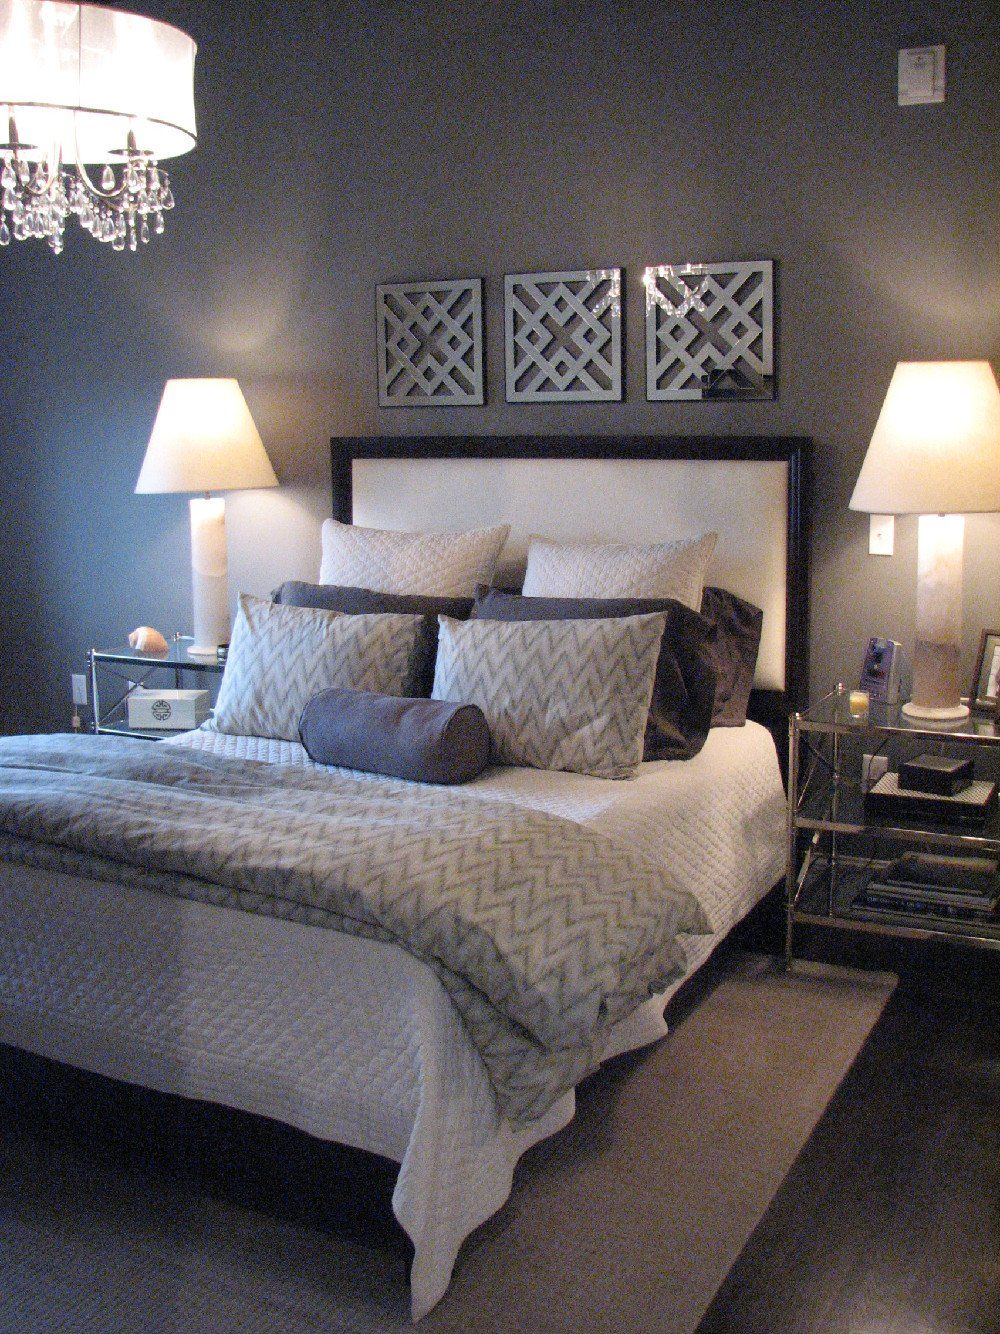 Best Master Bedroom Design Idea In Franklin Tn With Images 640 x 480